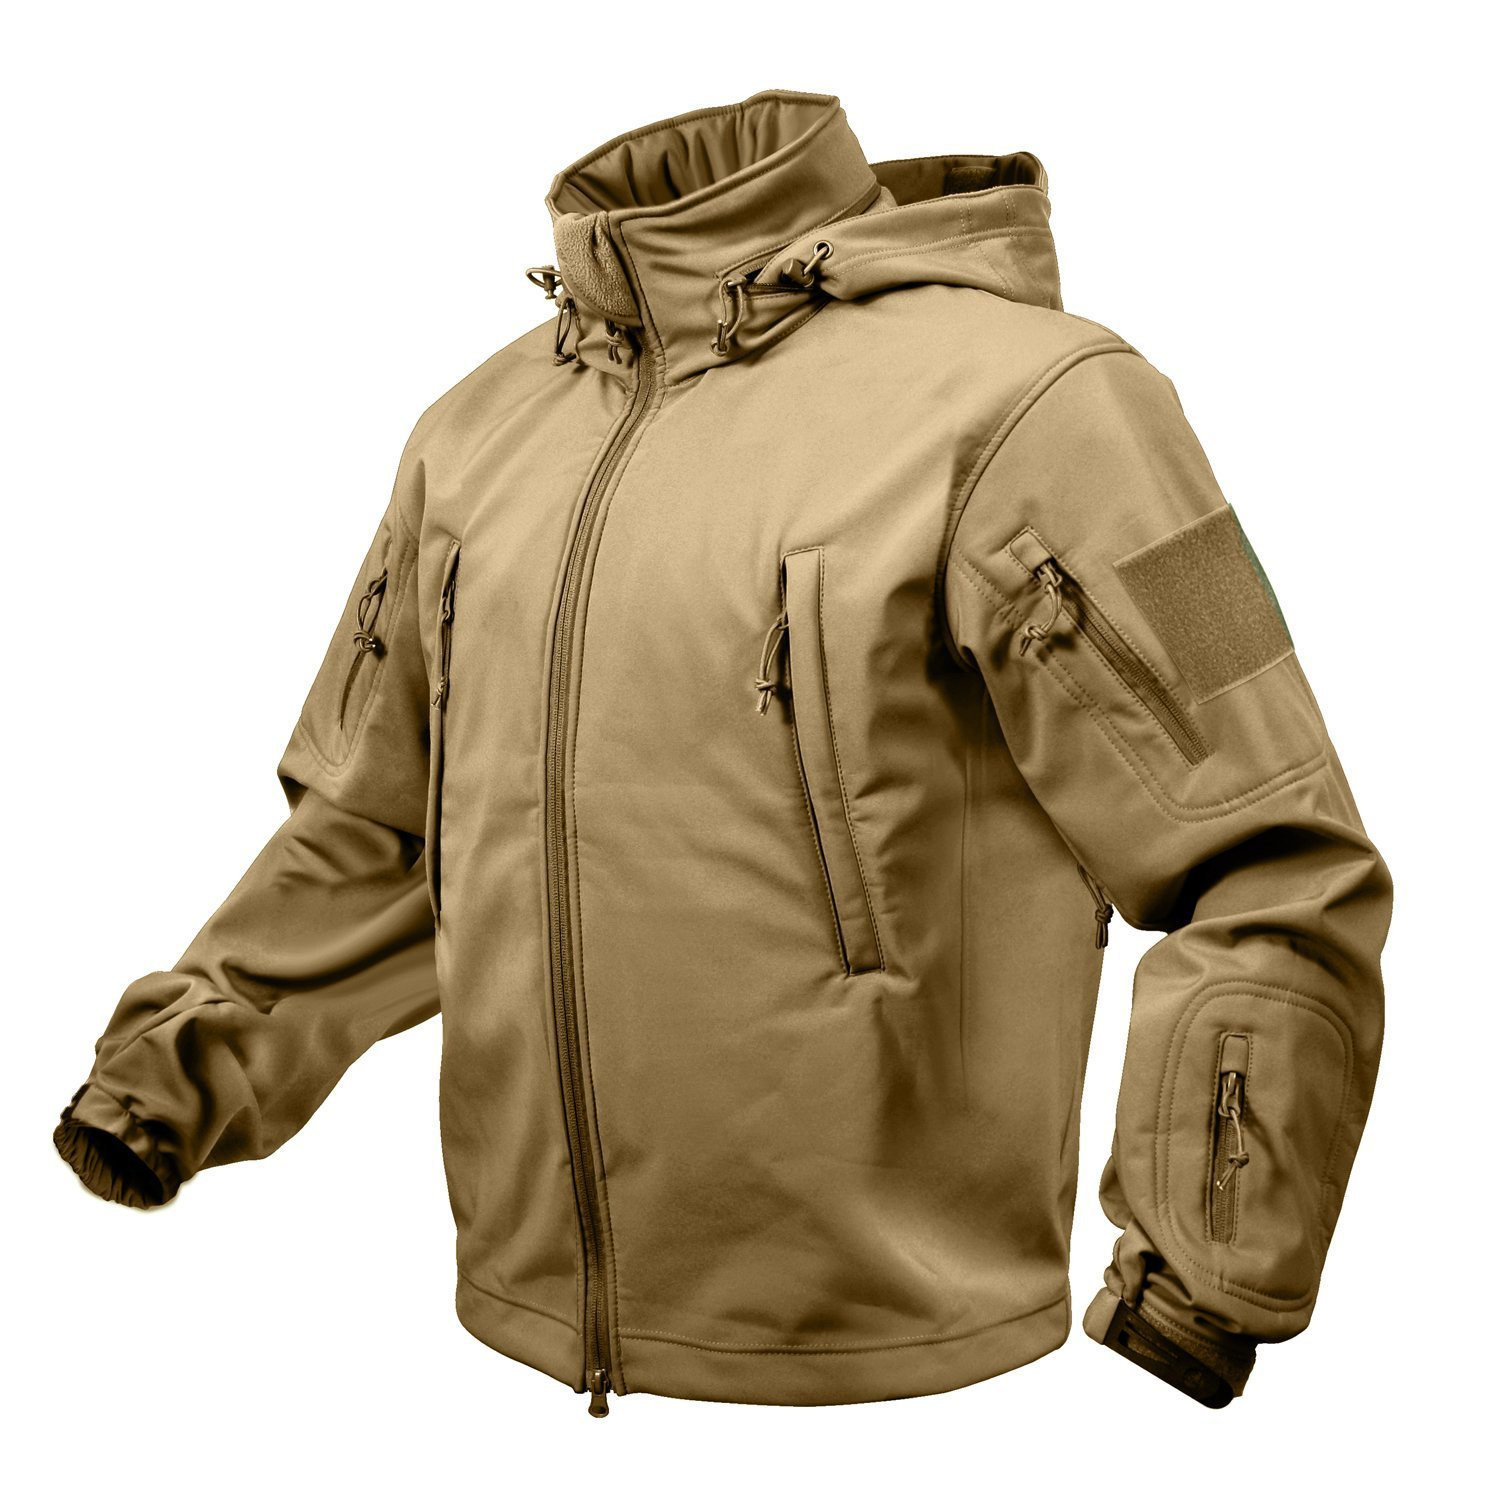 Last Day Promotion-70% OFF-Tactical Waterproof Military Jacket(Buy 2 Free shipping)